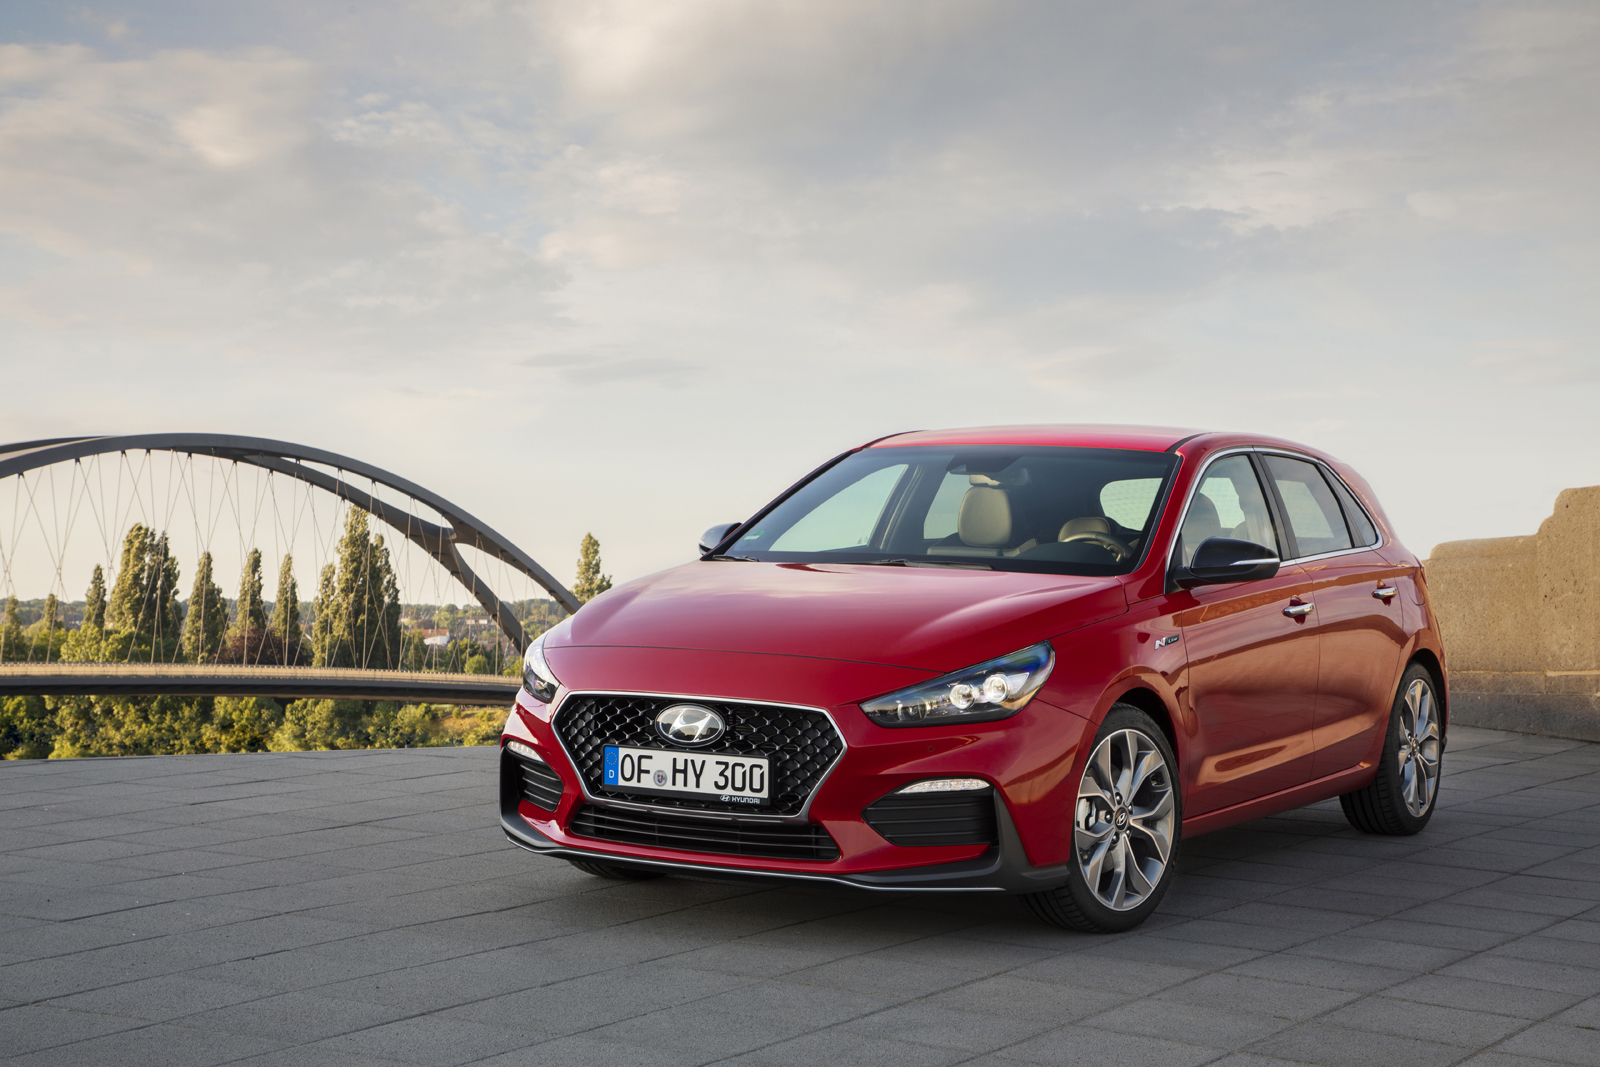 2019 elantra gt n line unveiled for canada is it us bound news